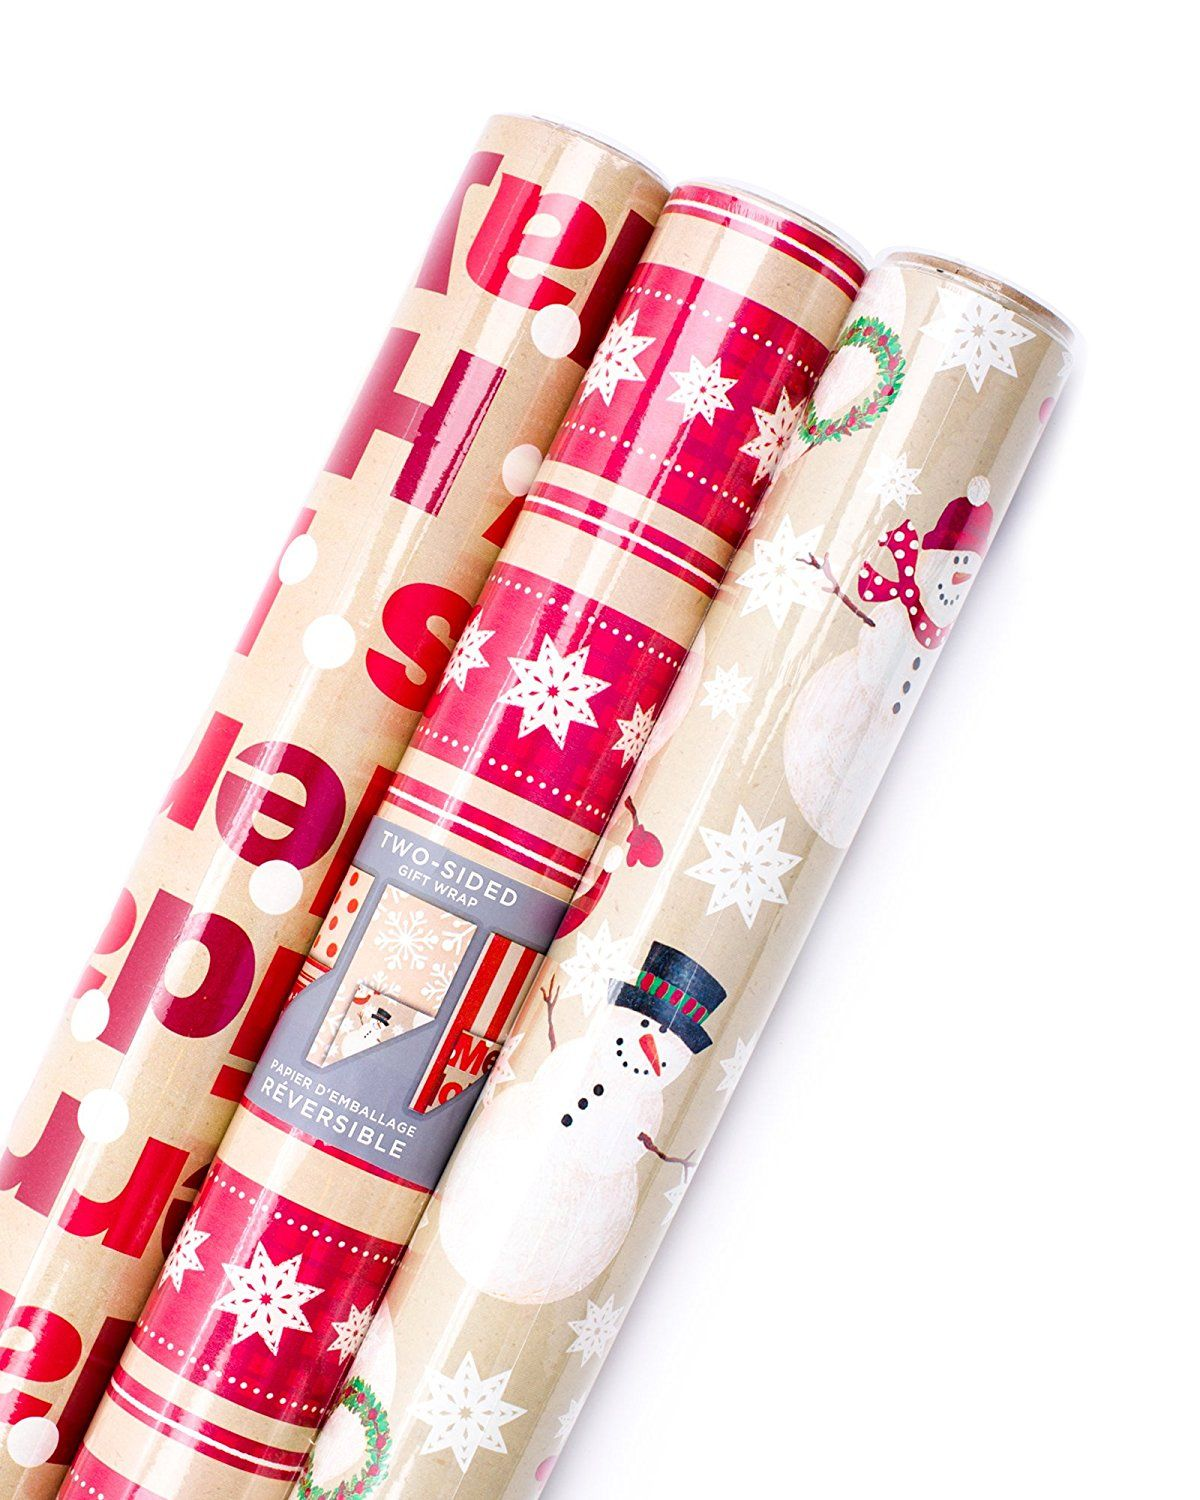 hallmark christmas reversible wrapping paper merry holiday 3 pack walmartcom - Walmart Christmas Wrapping Paper